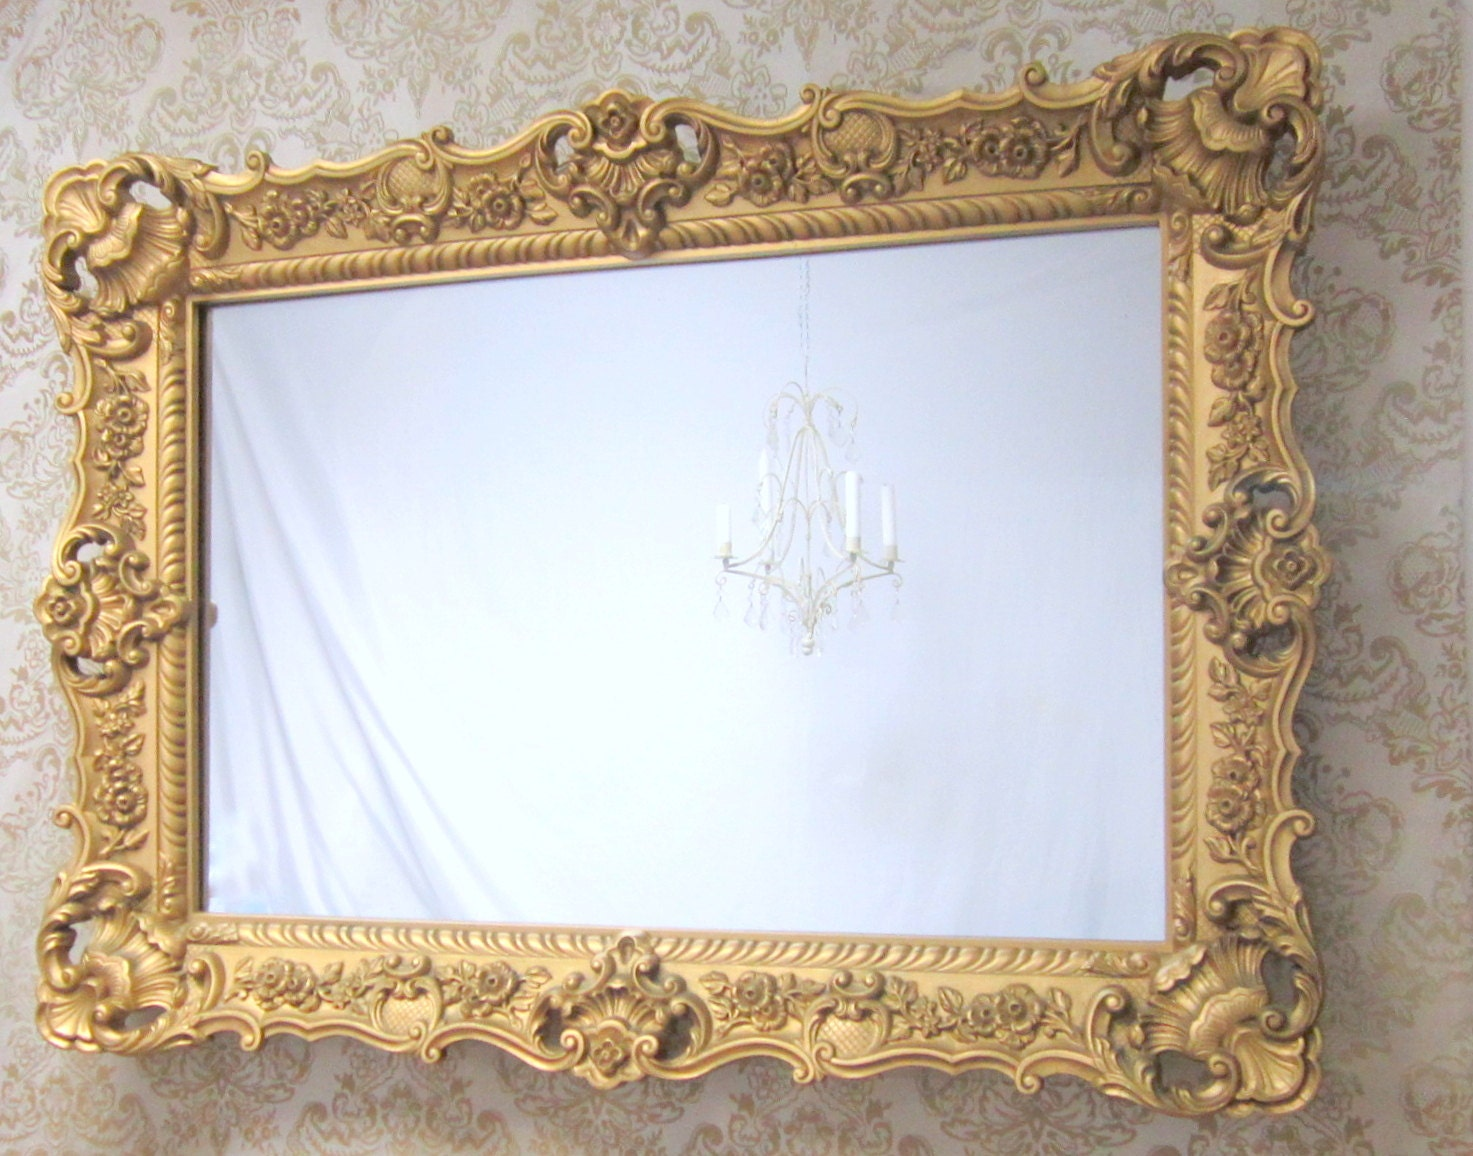 Hollywood regency mirrors for sale 45x33 large for Large framed mirrors